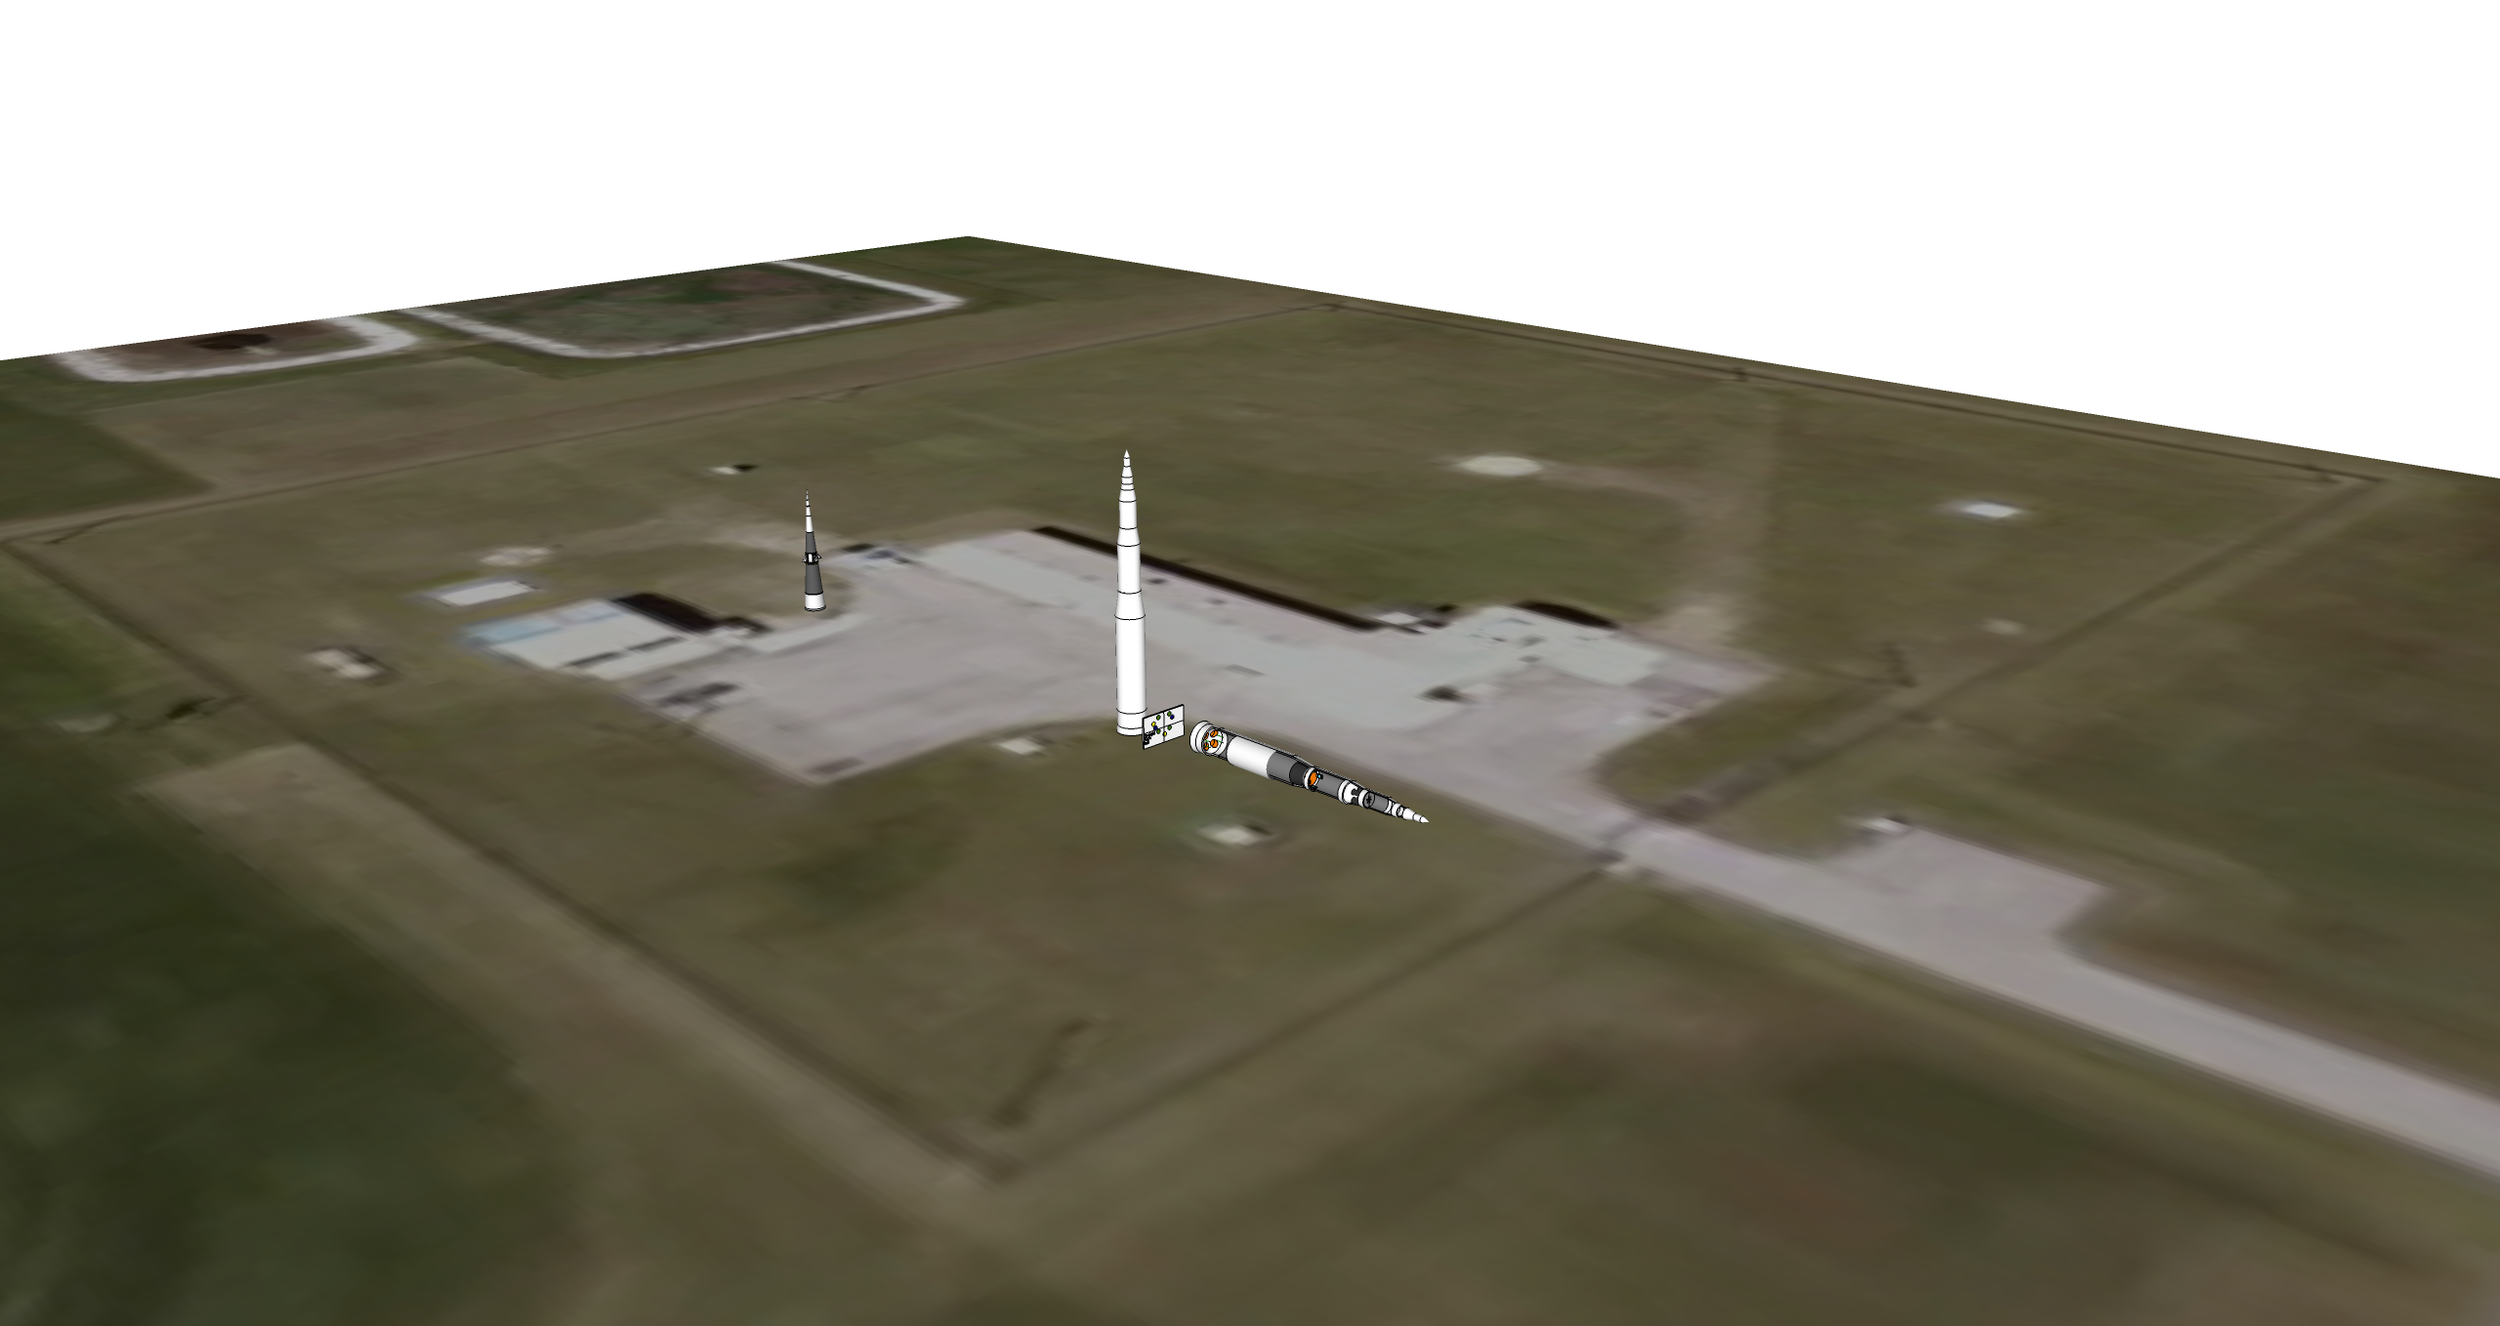 A satellite view of the museum with two artifacts (standing) added and an entertainment/educational piece laid on the ground.